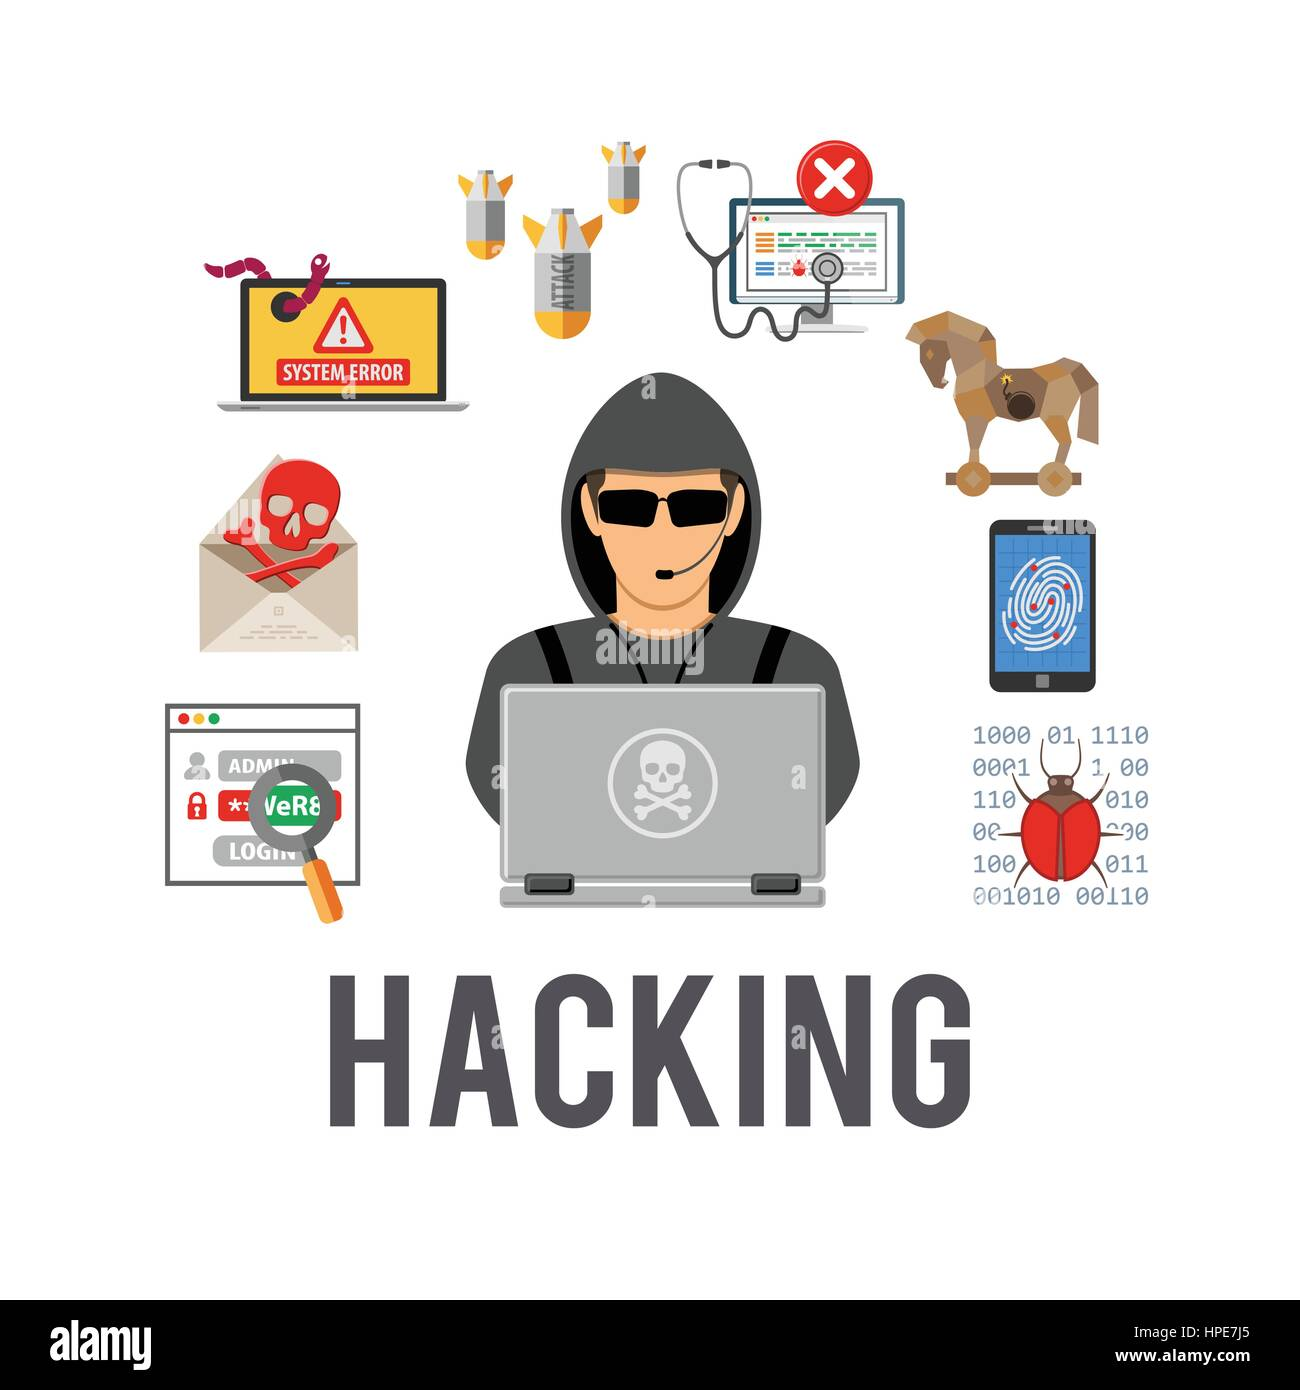 Cyber Crime and Hacking Concept - Stock Vector